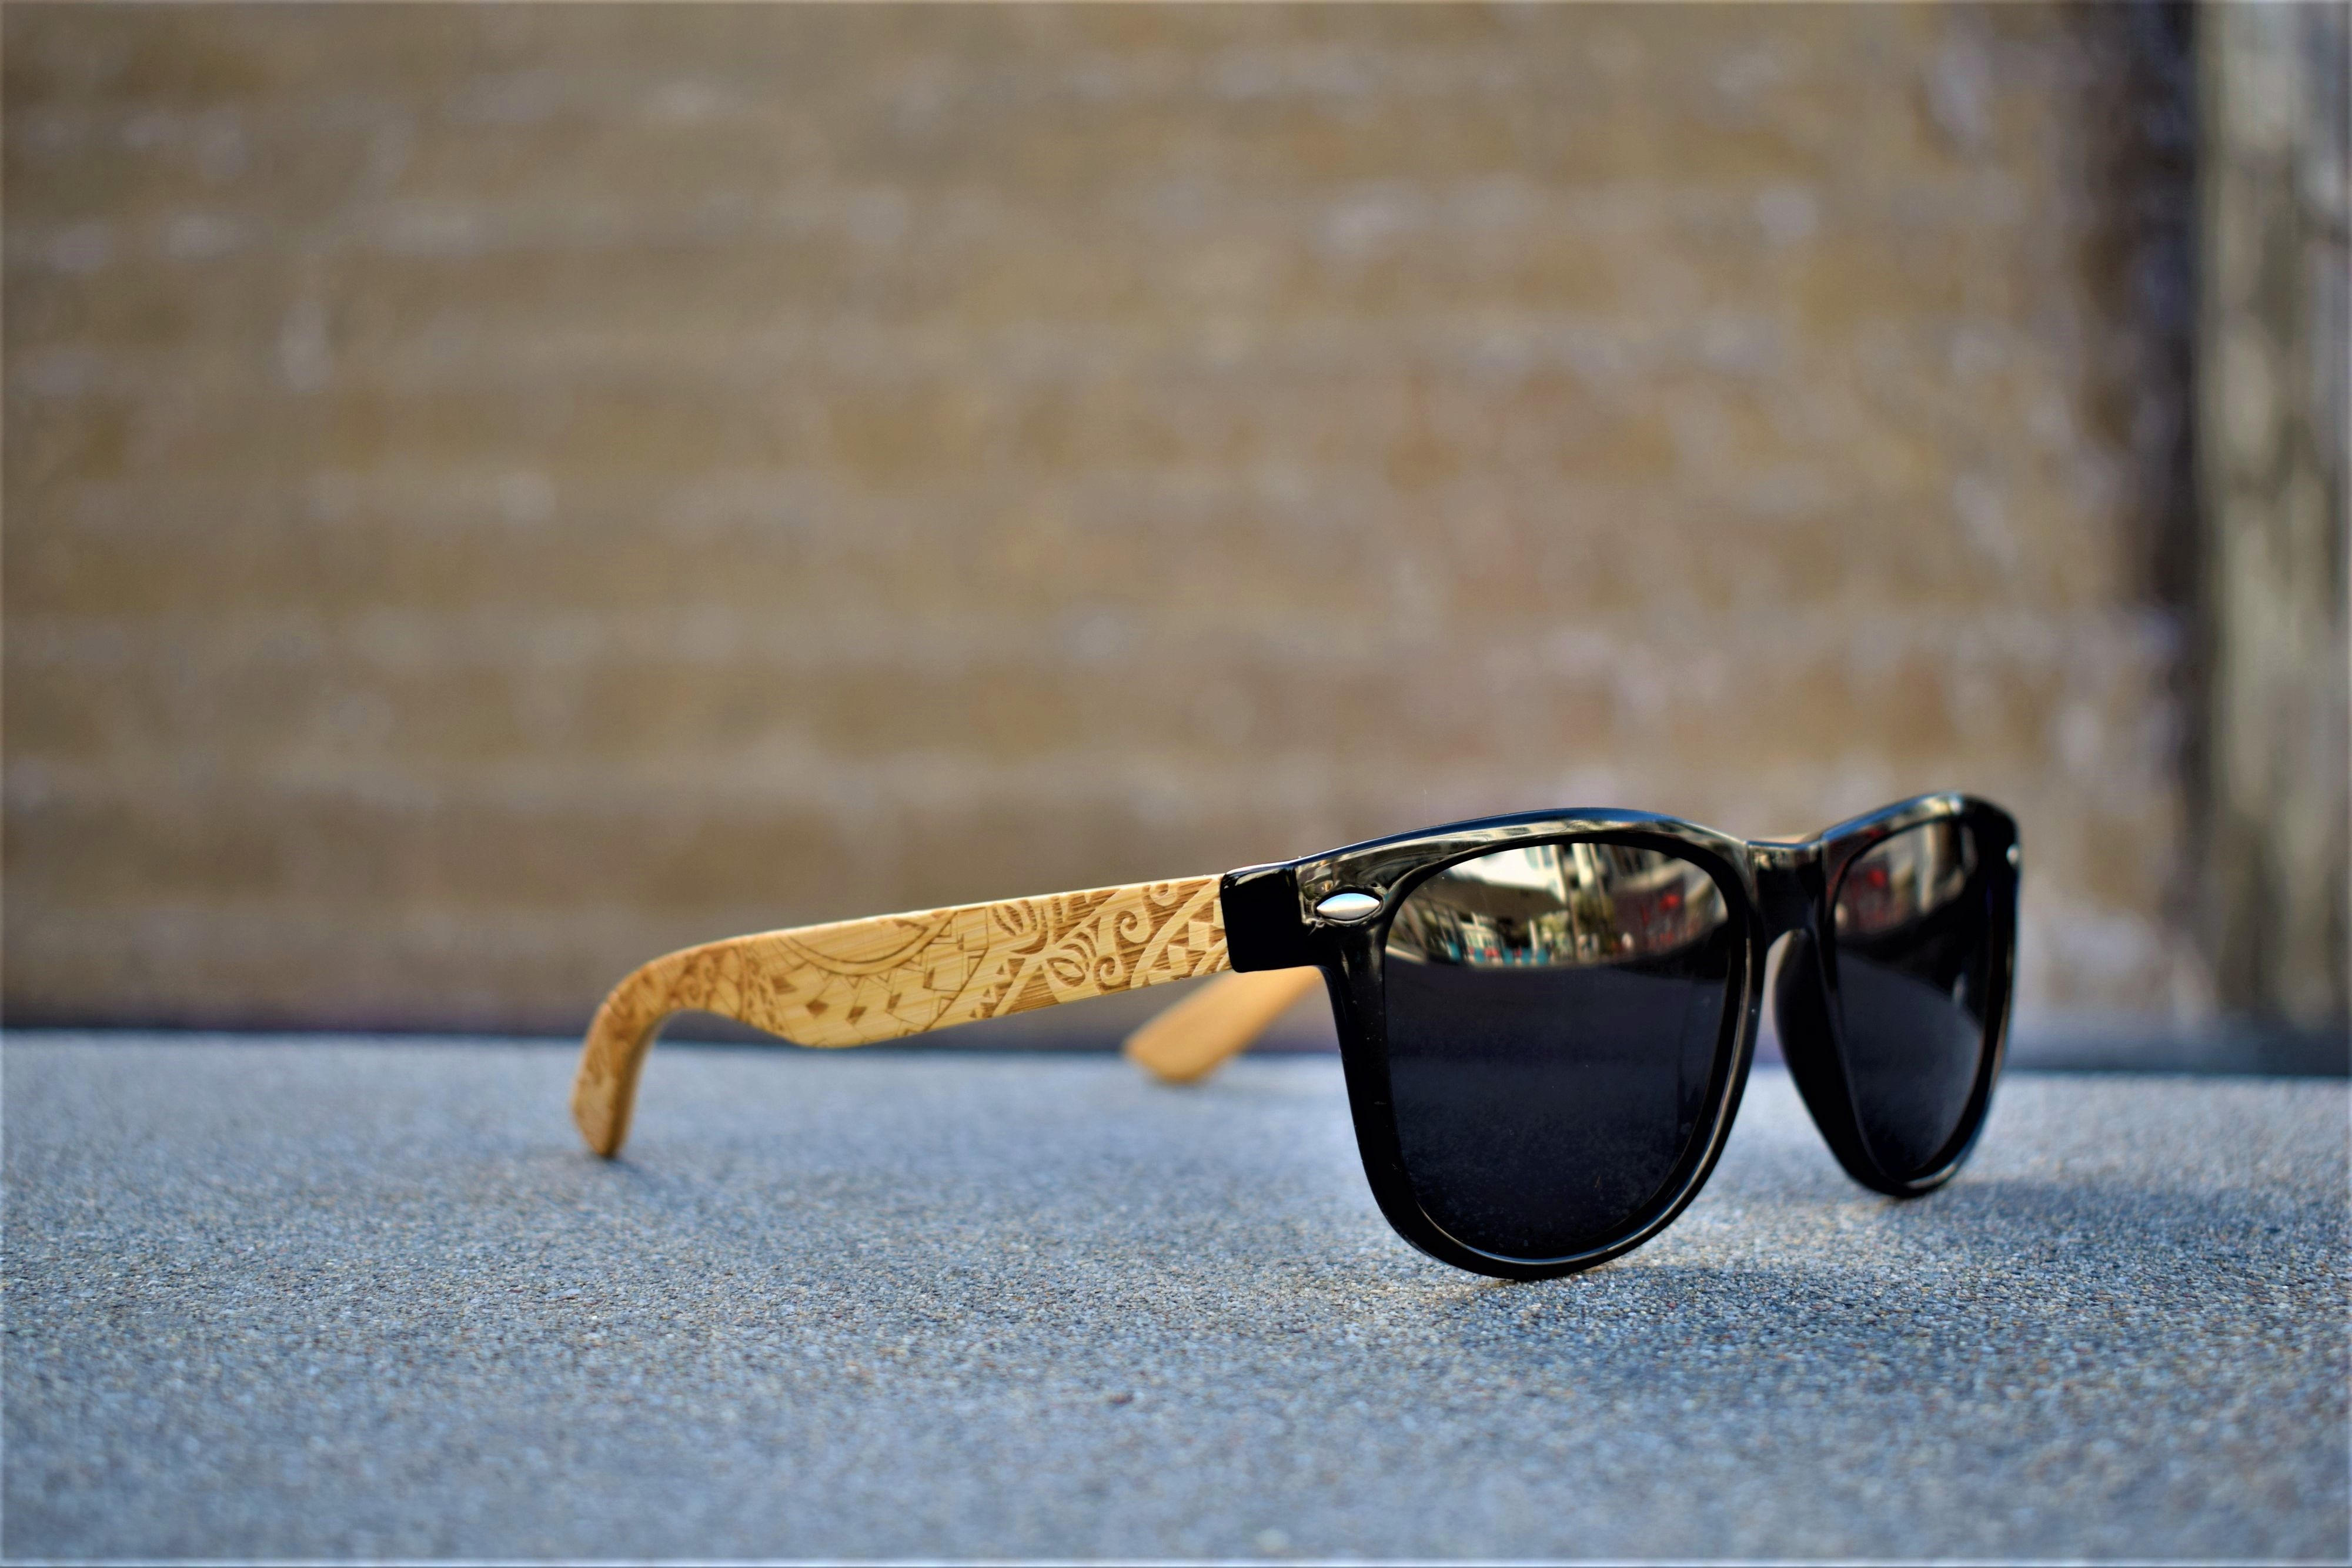 6673748bcad4 Polynesian style polarized bamboo sunglasses for men and women. Find this  Pin and more on Koa Wood Knock ...